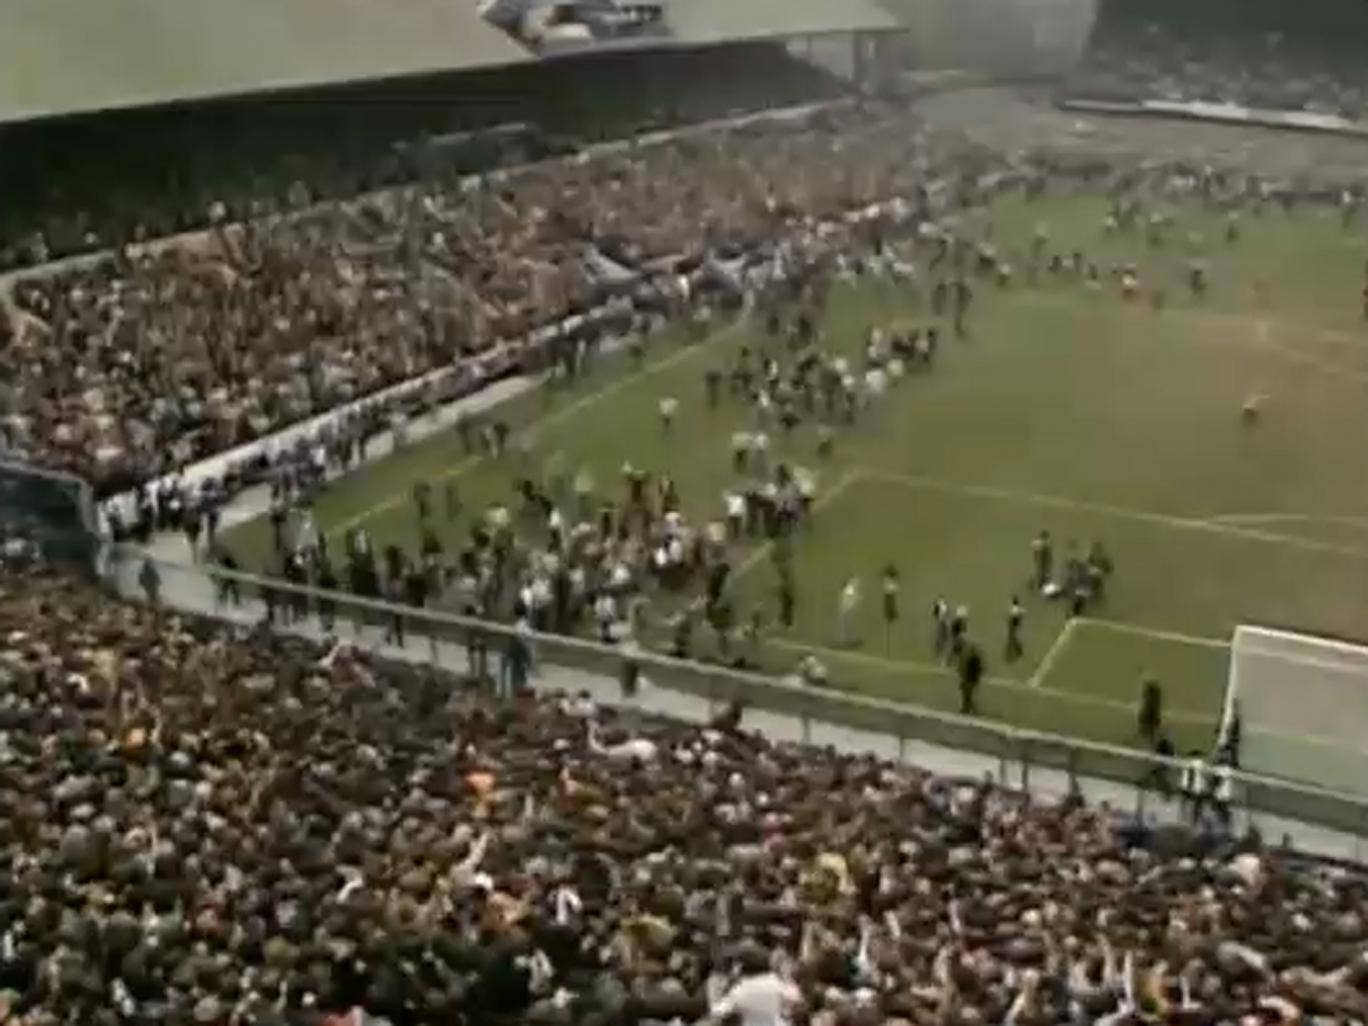 Crowds run across the pitch during the match